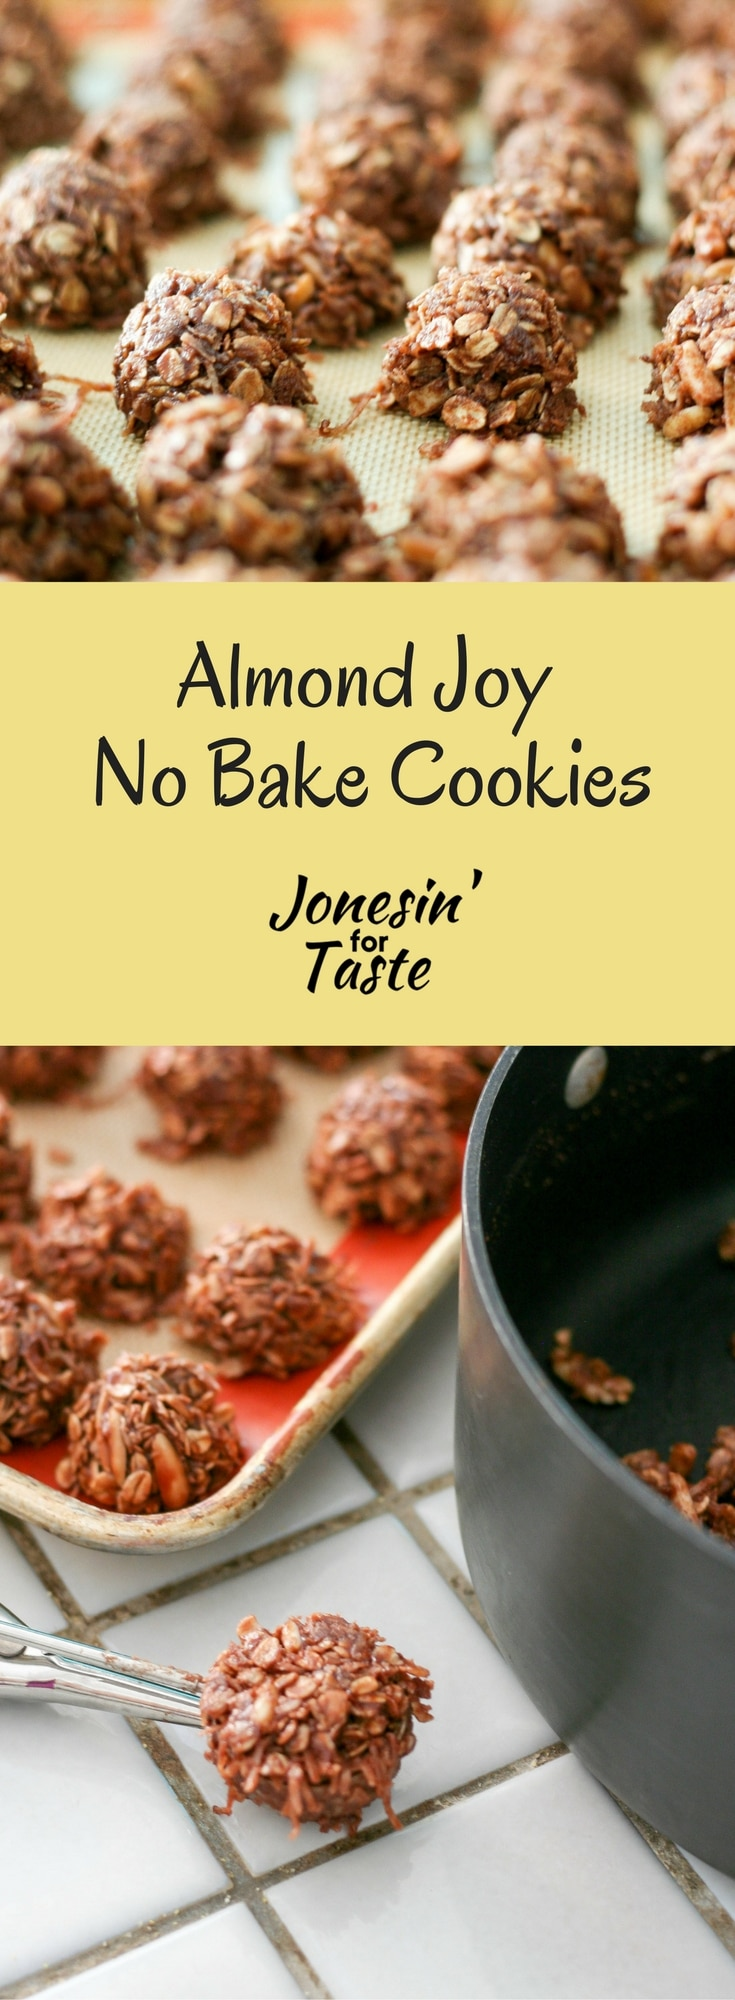 Almond Joy No Bake Cookies with flavors reminiscent of the classic Almond Joy candy bars for a quick and easy cookie for the holidays or a hot summer day. #ChristmasCookies #nobakedesserts